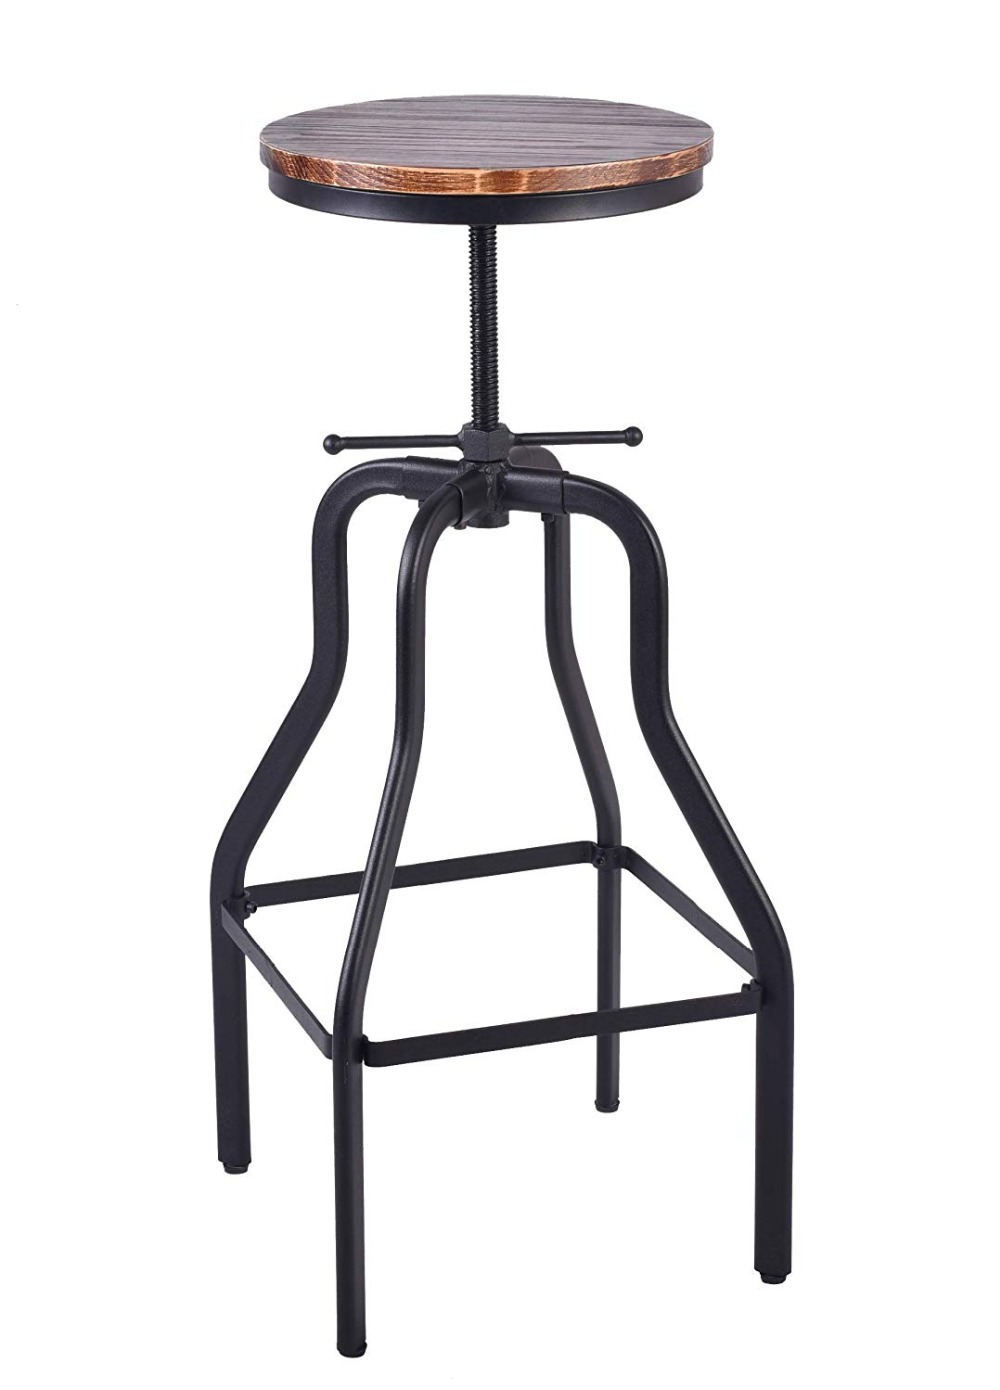 Vintage Bar Stool Round Swivel Wood Seat And Metal Height Adjustable Industrial Look Swivel Bar Chairs